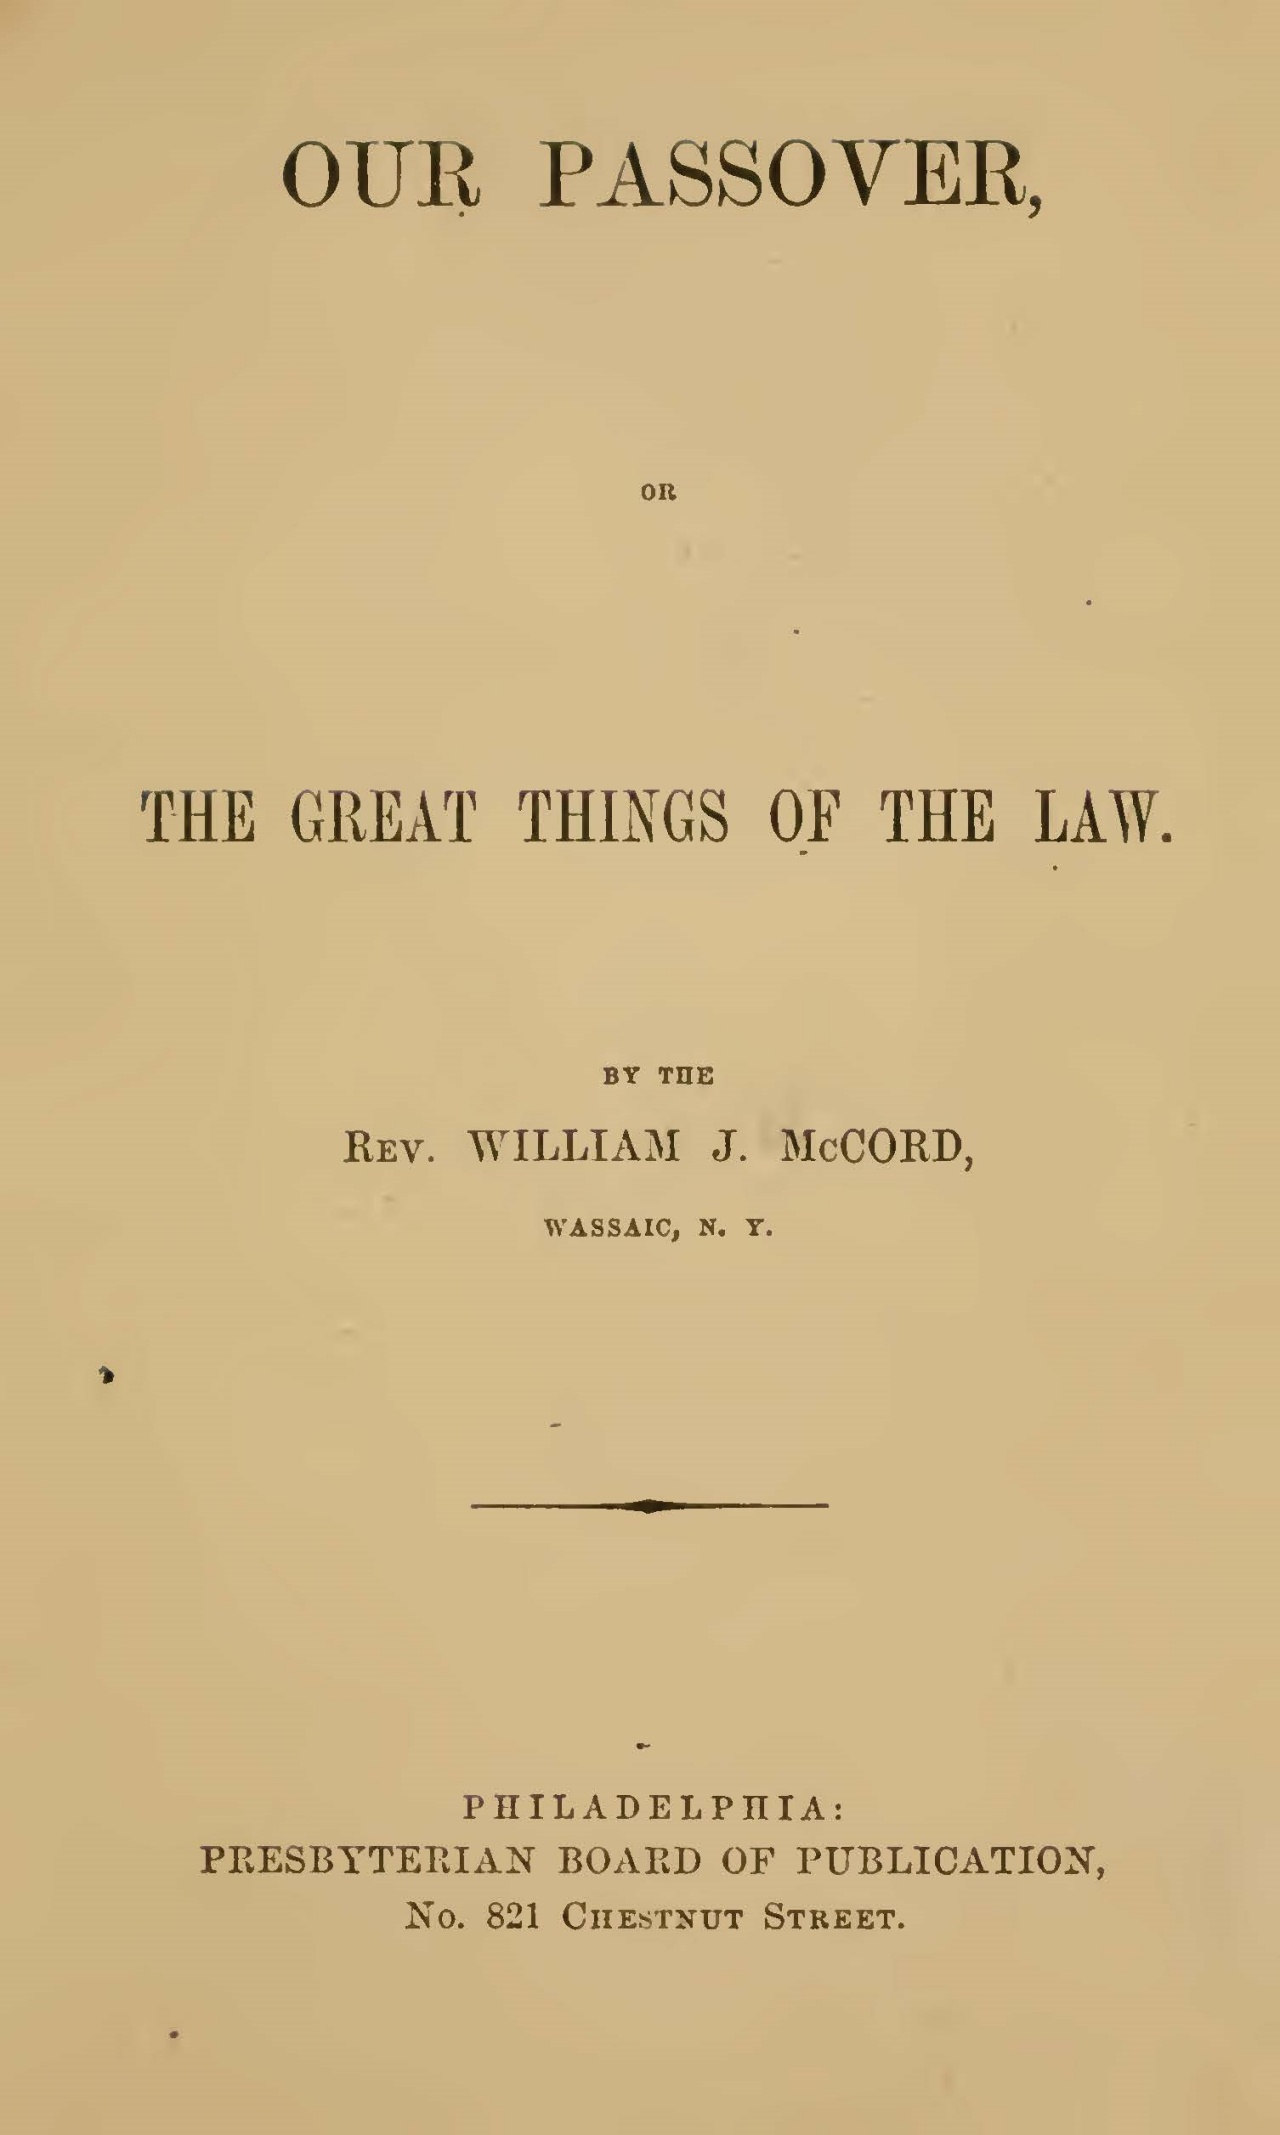 McCord, William J., Our Passover Title Page.jpg